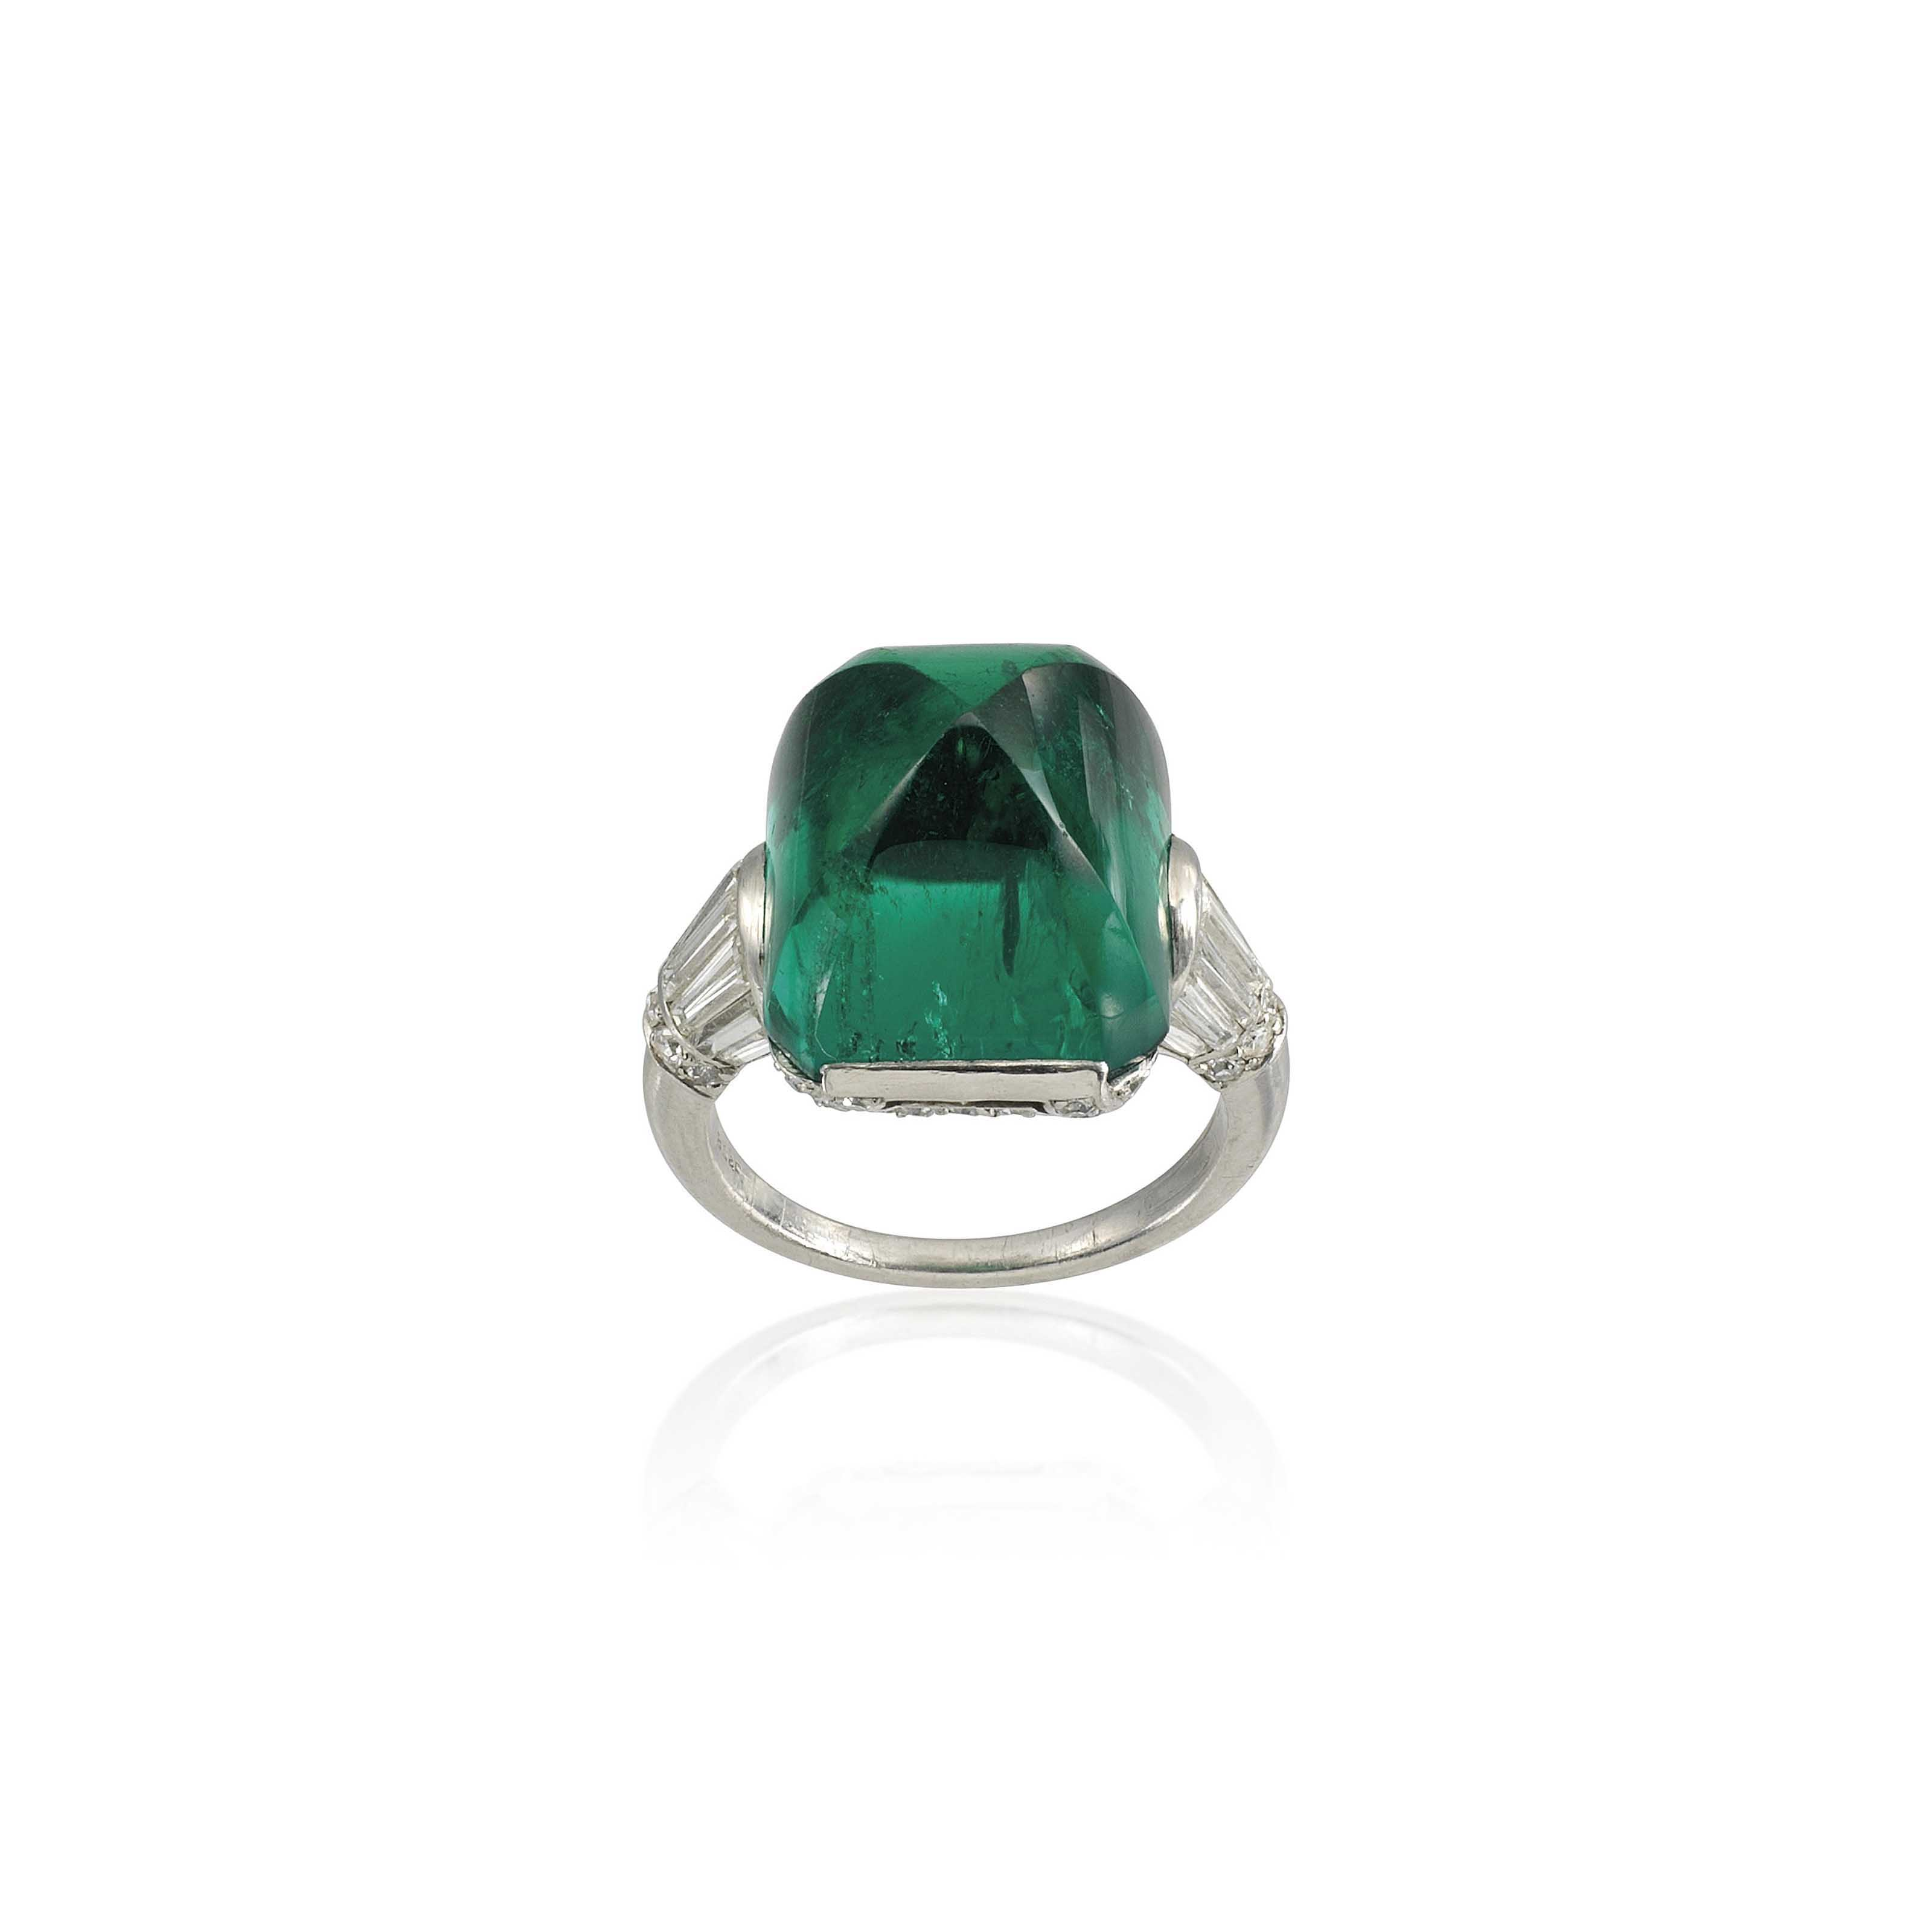 AN IMPORTANT ART DÉCO EMERALD AND DIAMOND RING, BY BLACK, STARR & FROST